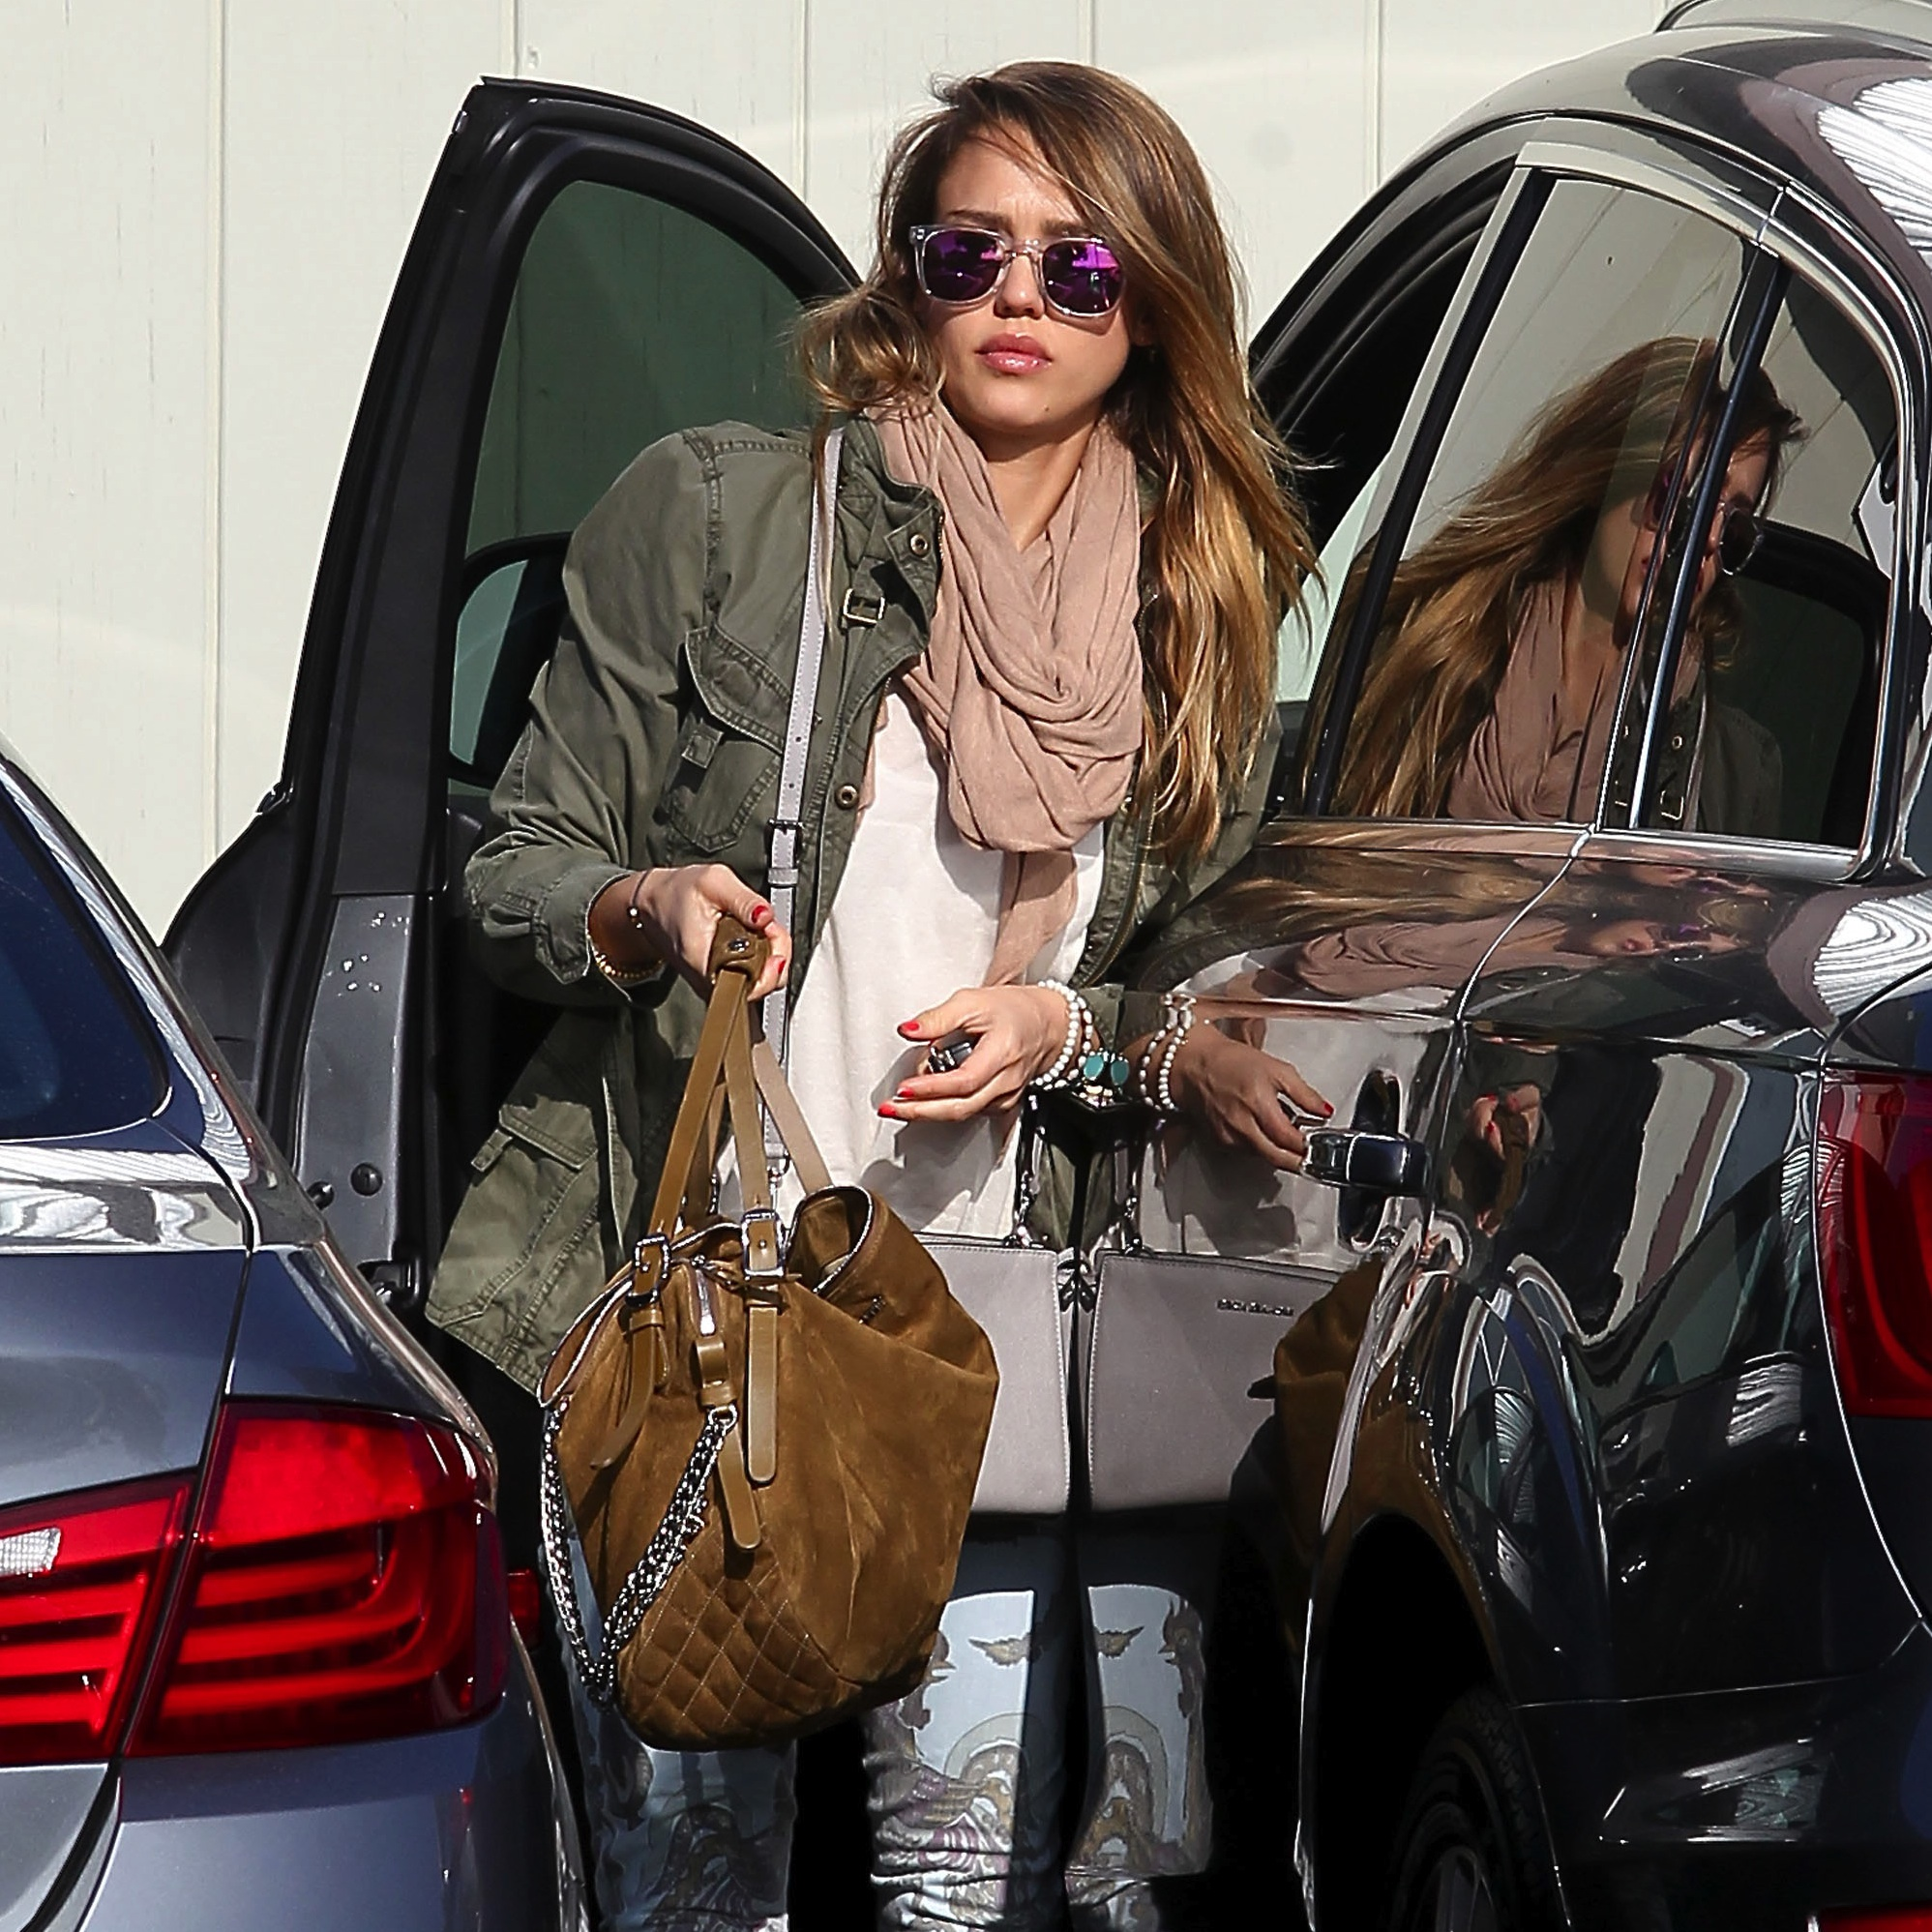 Get the Look: Jessica Alba's Casual Comfy Look